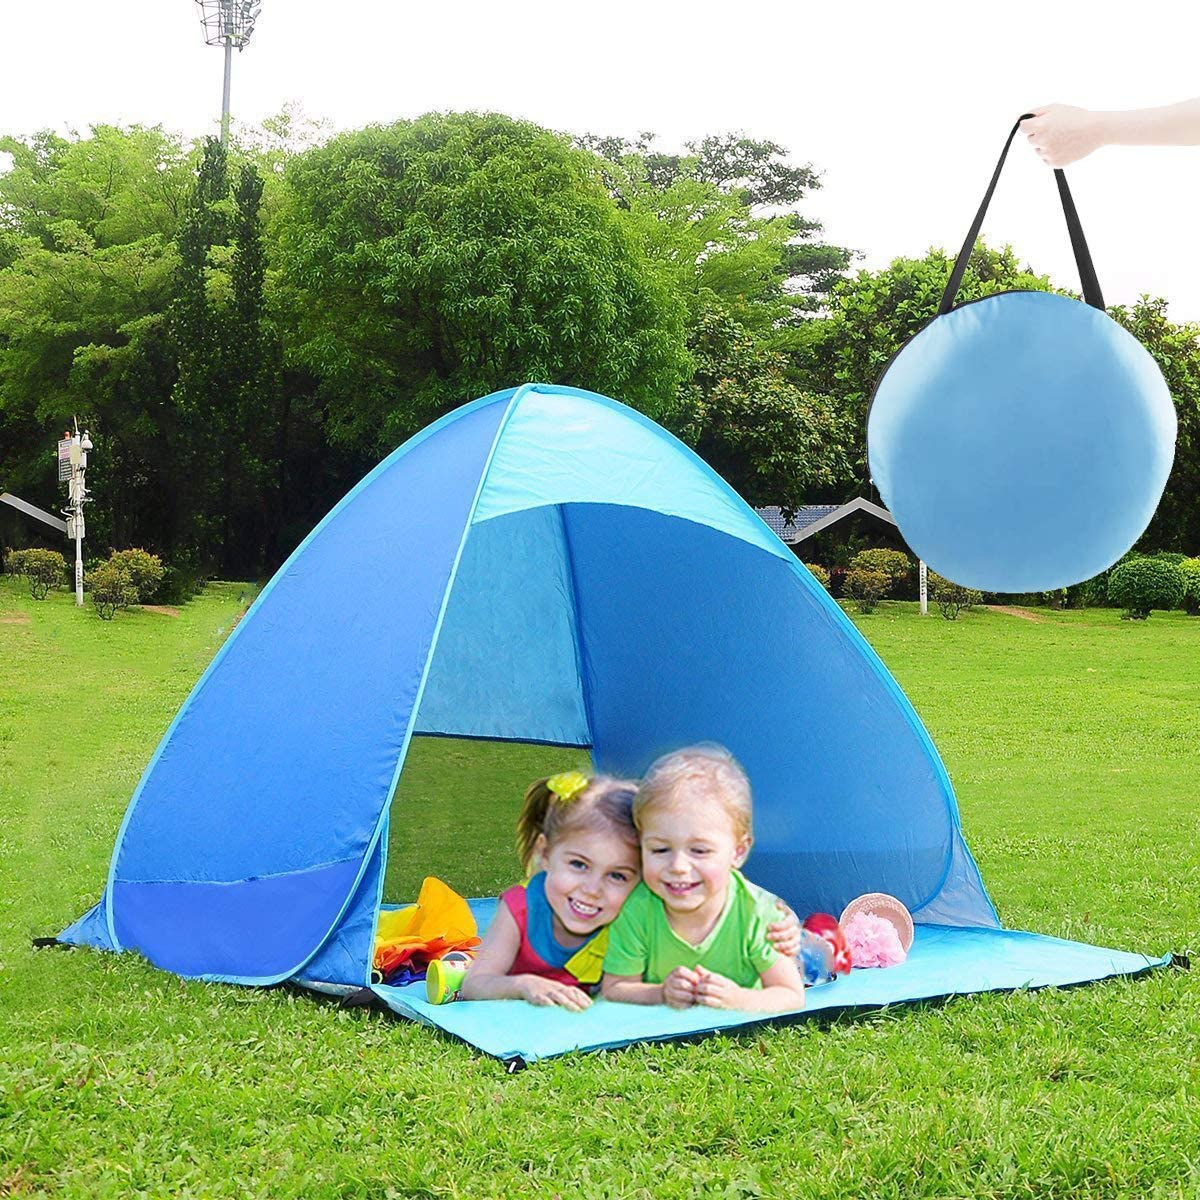 Pop Up Beach Tent, Portable Sun Shade Shelter Camping Tent for ...